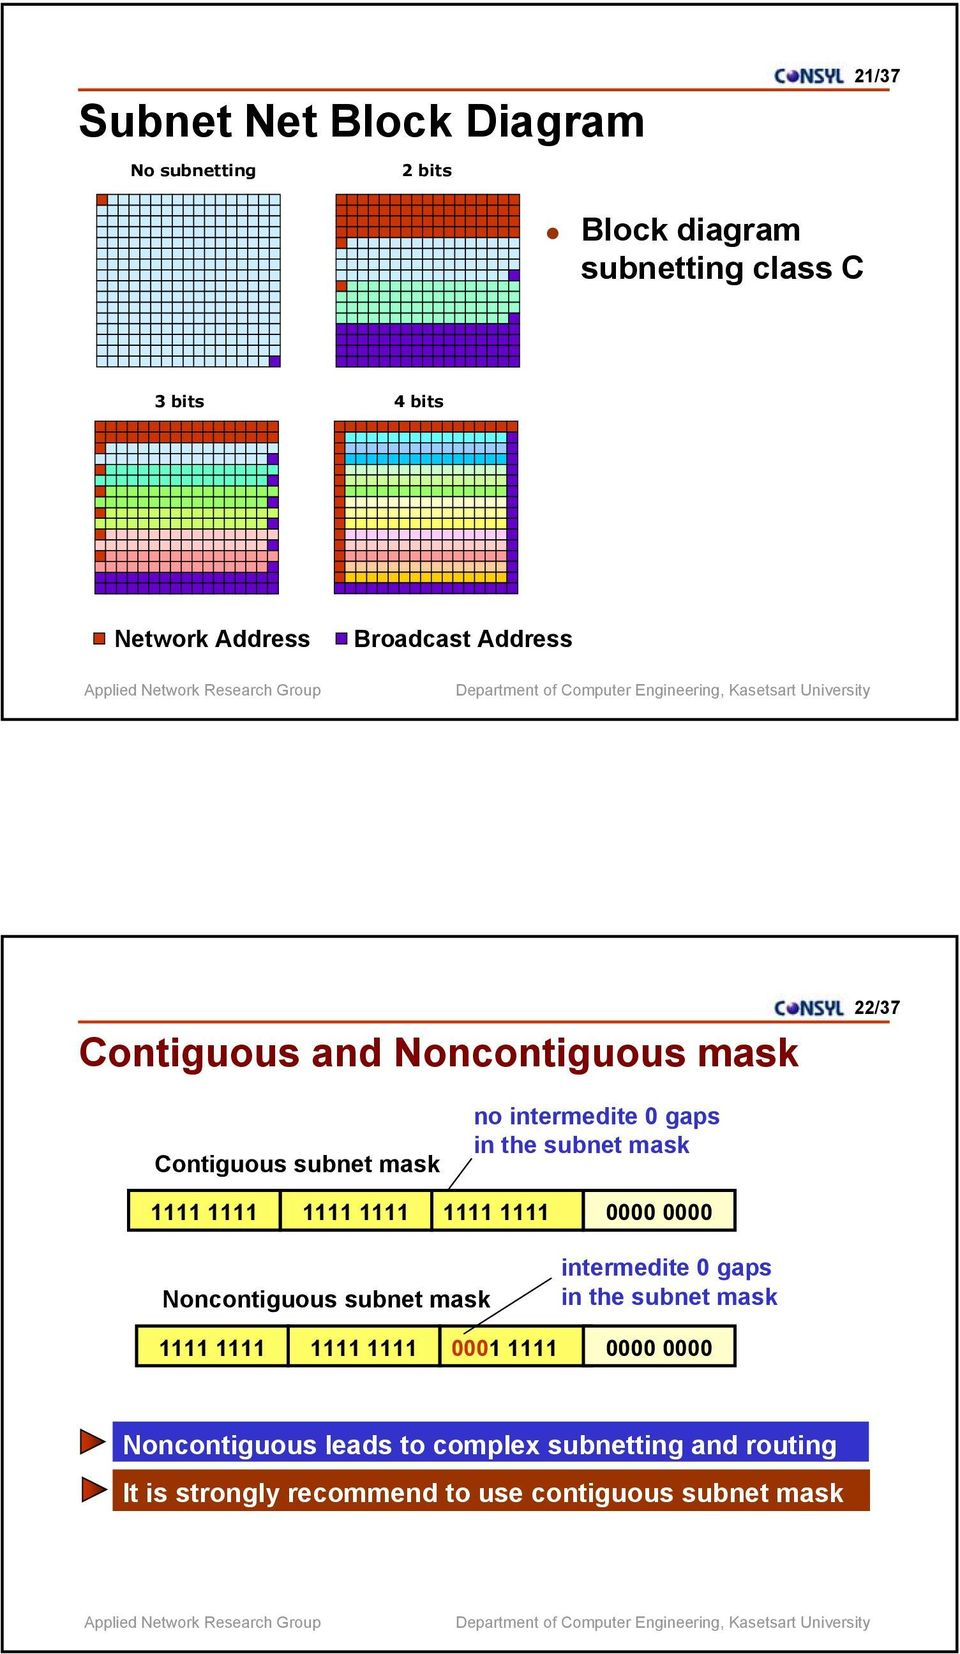 gaps in the subnet mask 0000 0000 Noncontiguous subnet mask intermedite 0 gaps in the subnet mask 0001 1111